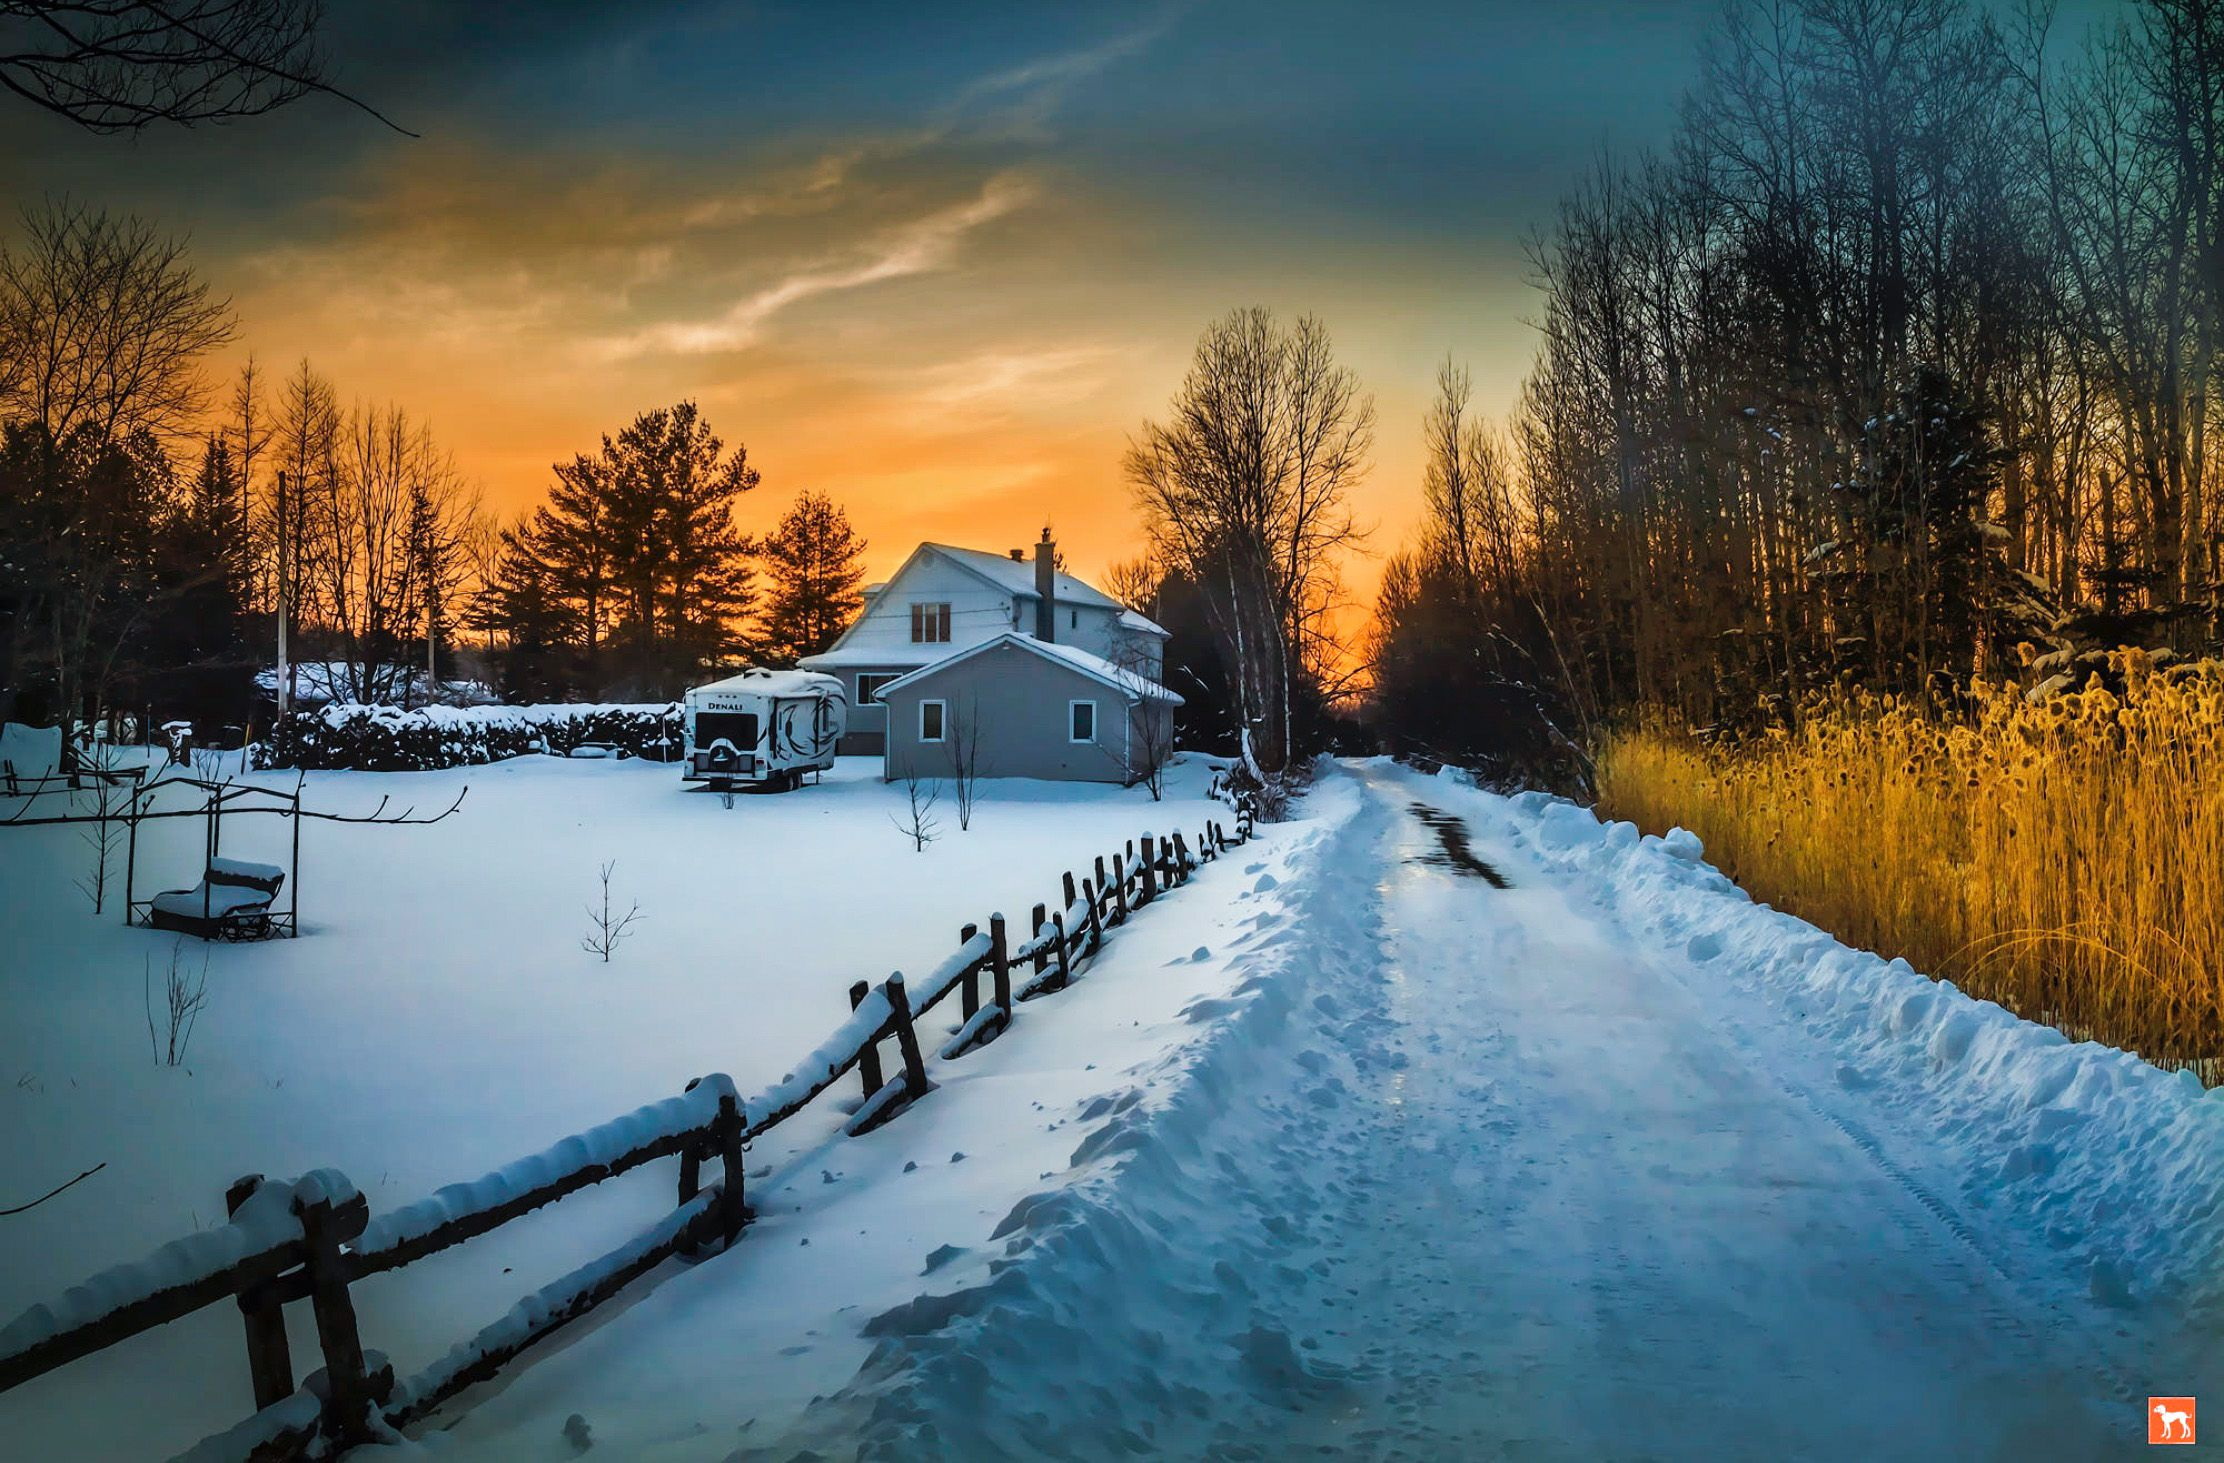 Winter Dawn Over Farm And Snowy Road Waterloo Eastern Townships Quebec By Daniel Racine On 500px Cr Landscape Photography Scenery Winter